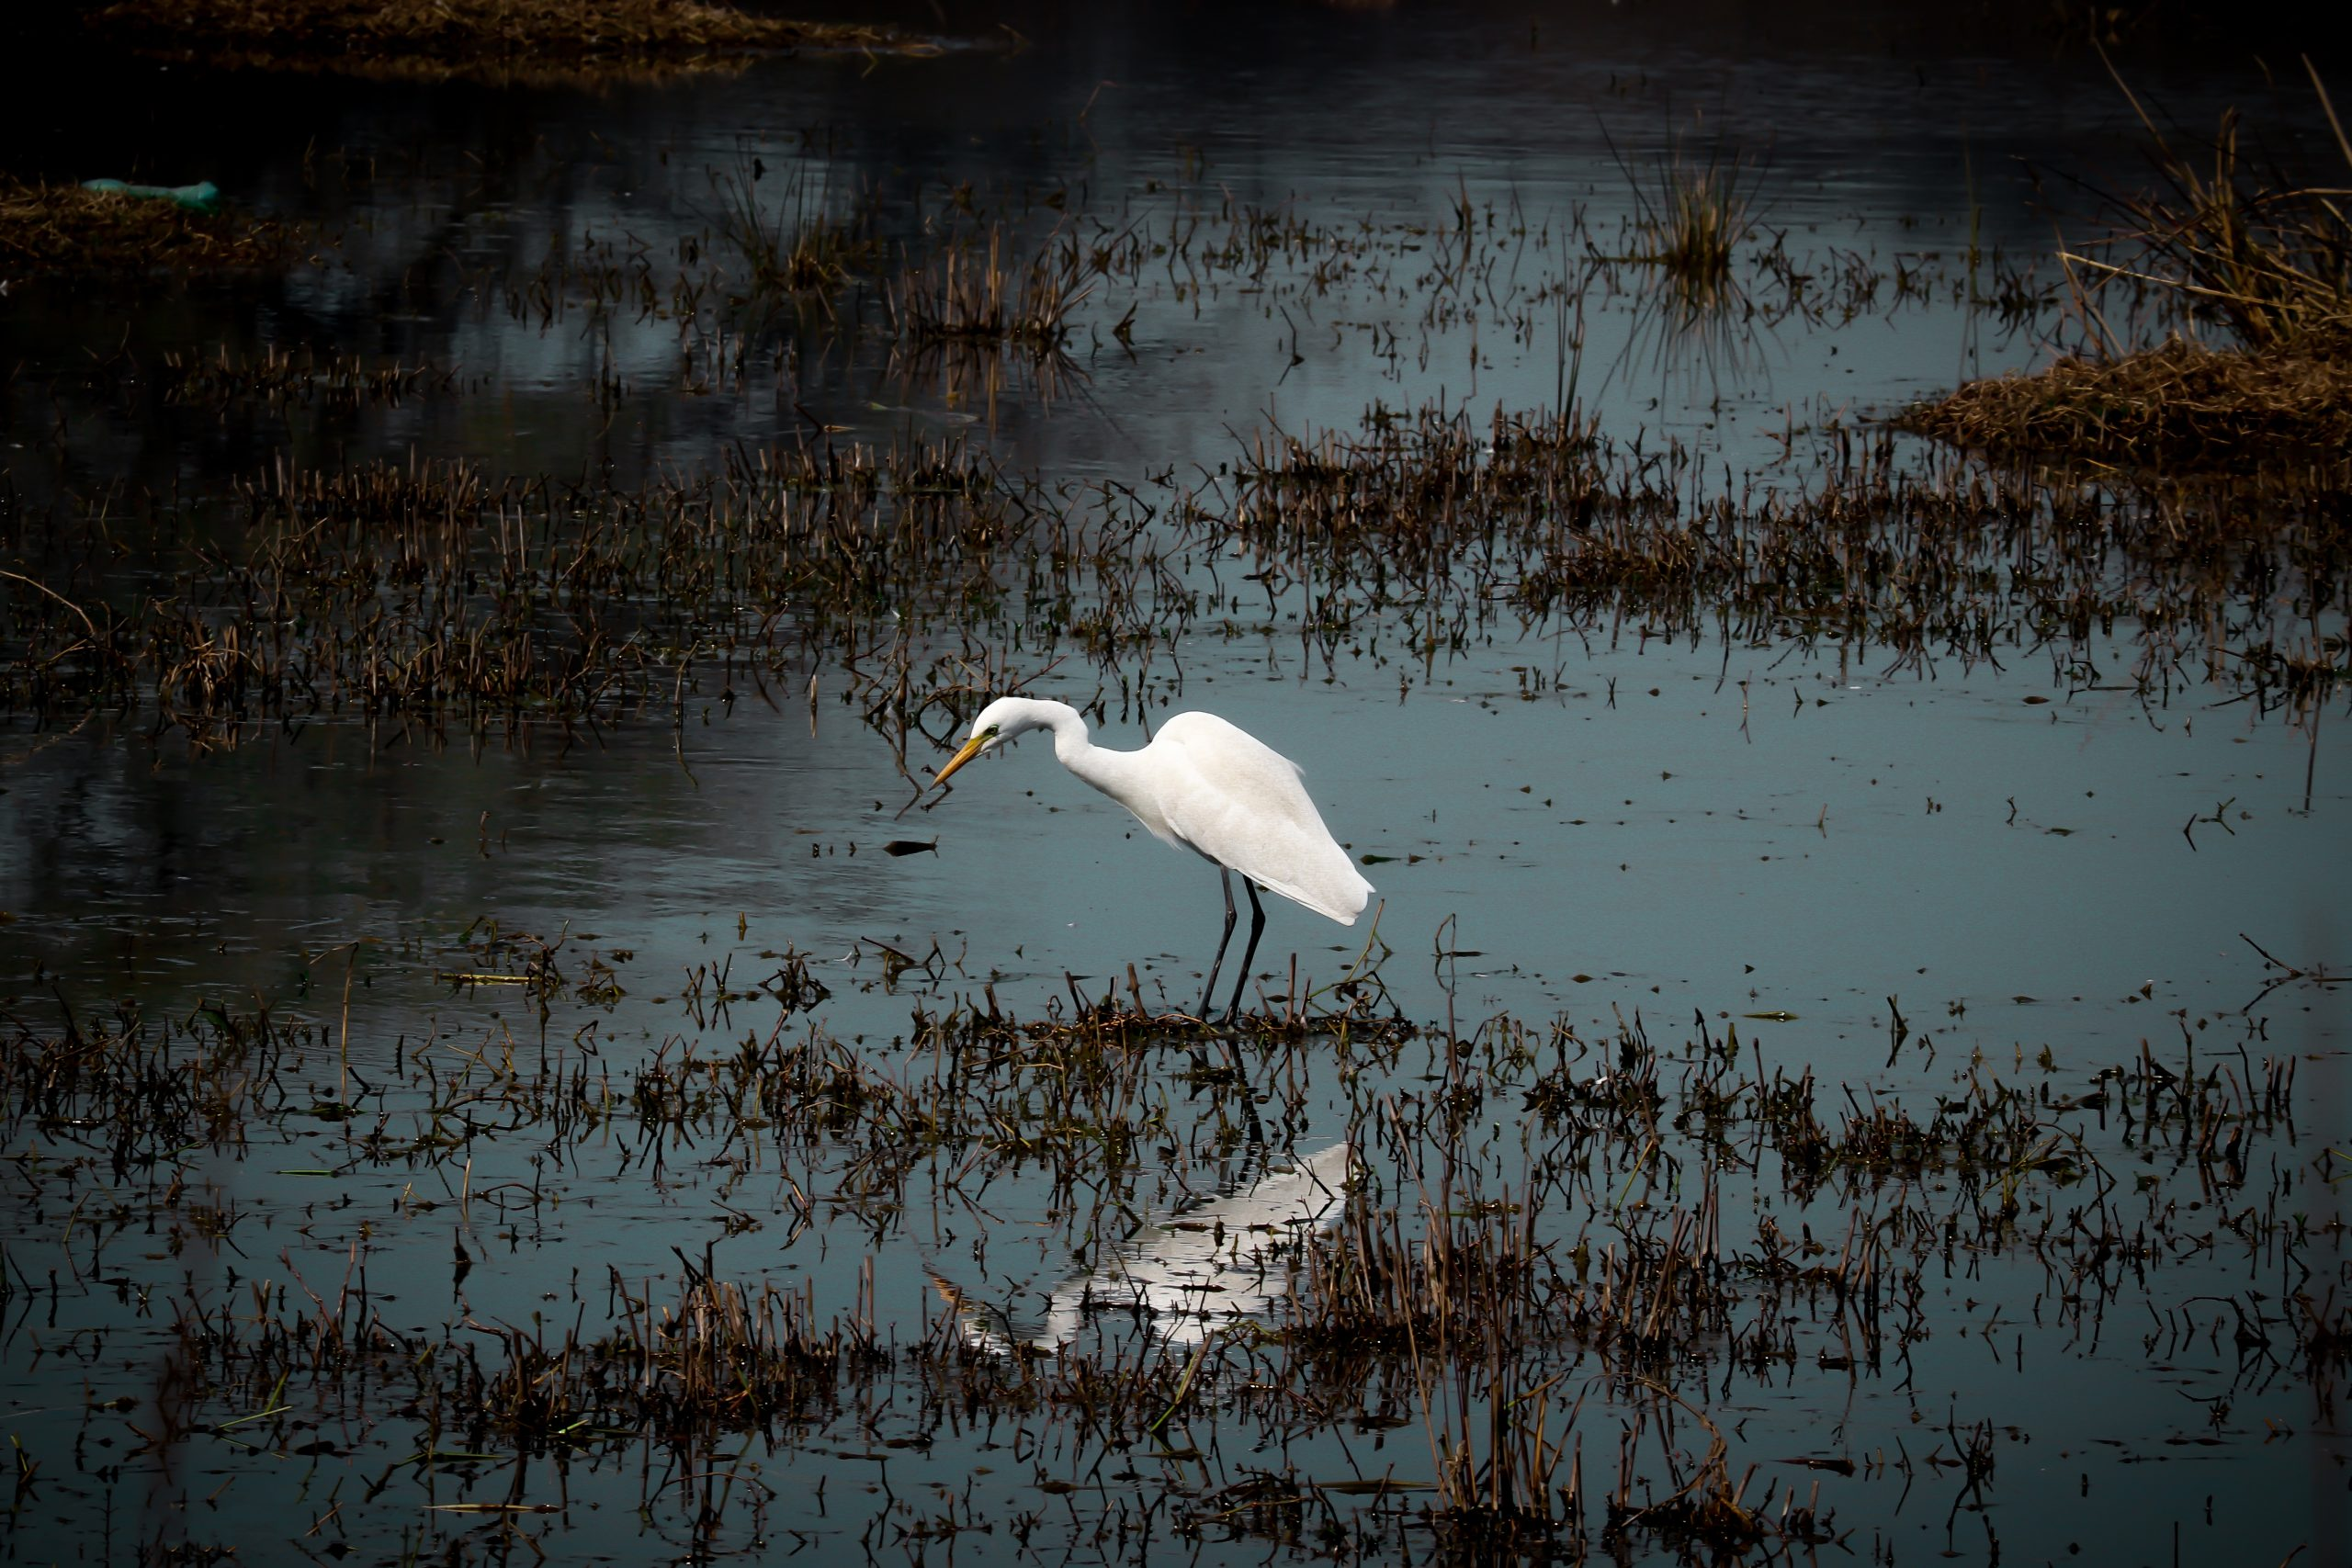 A stork in a pond